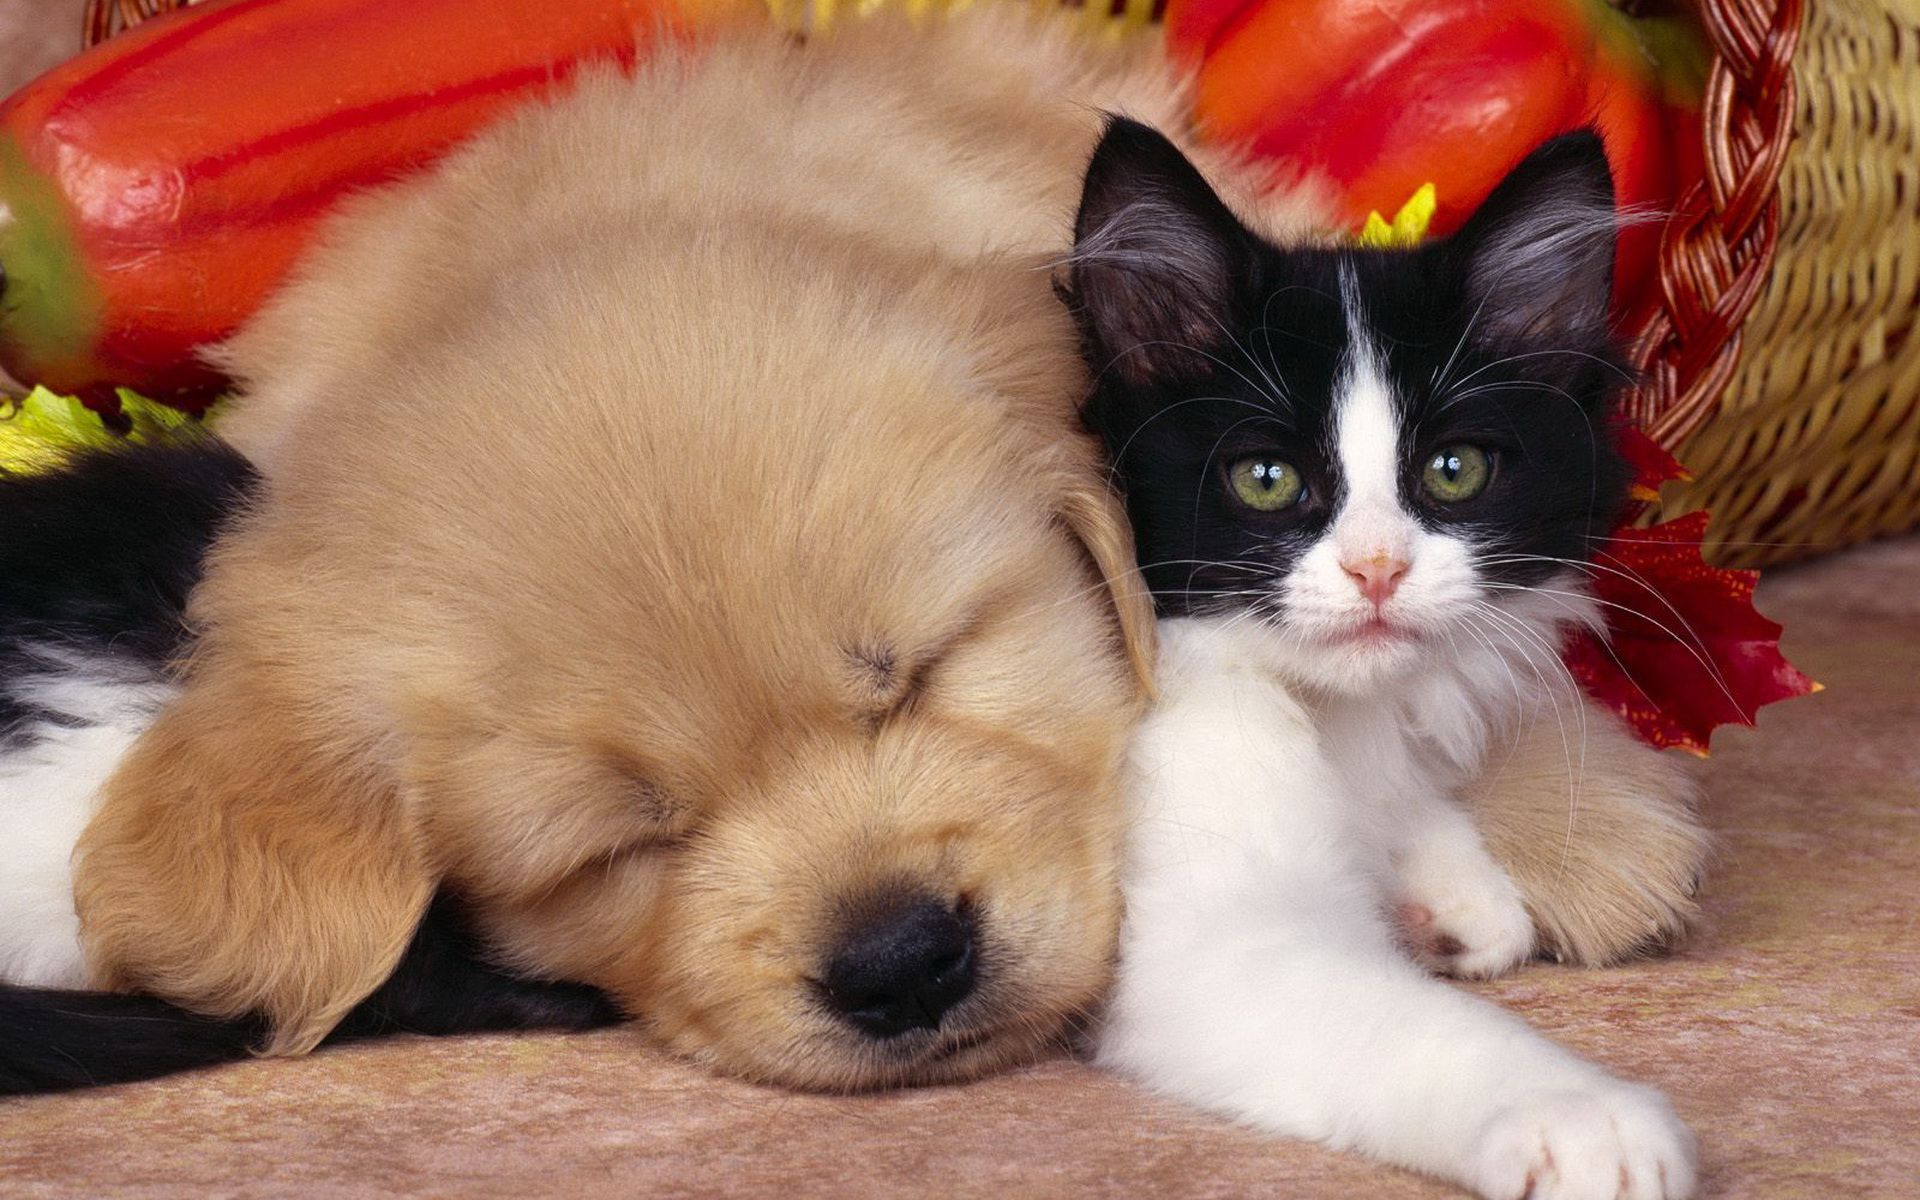 dog and cat full hd wallpaper and background image | 1920x1200 | id